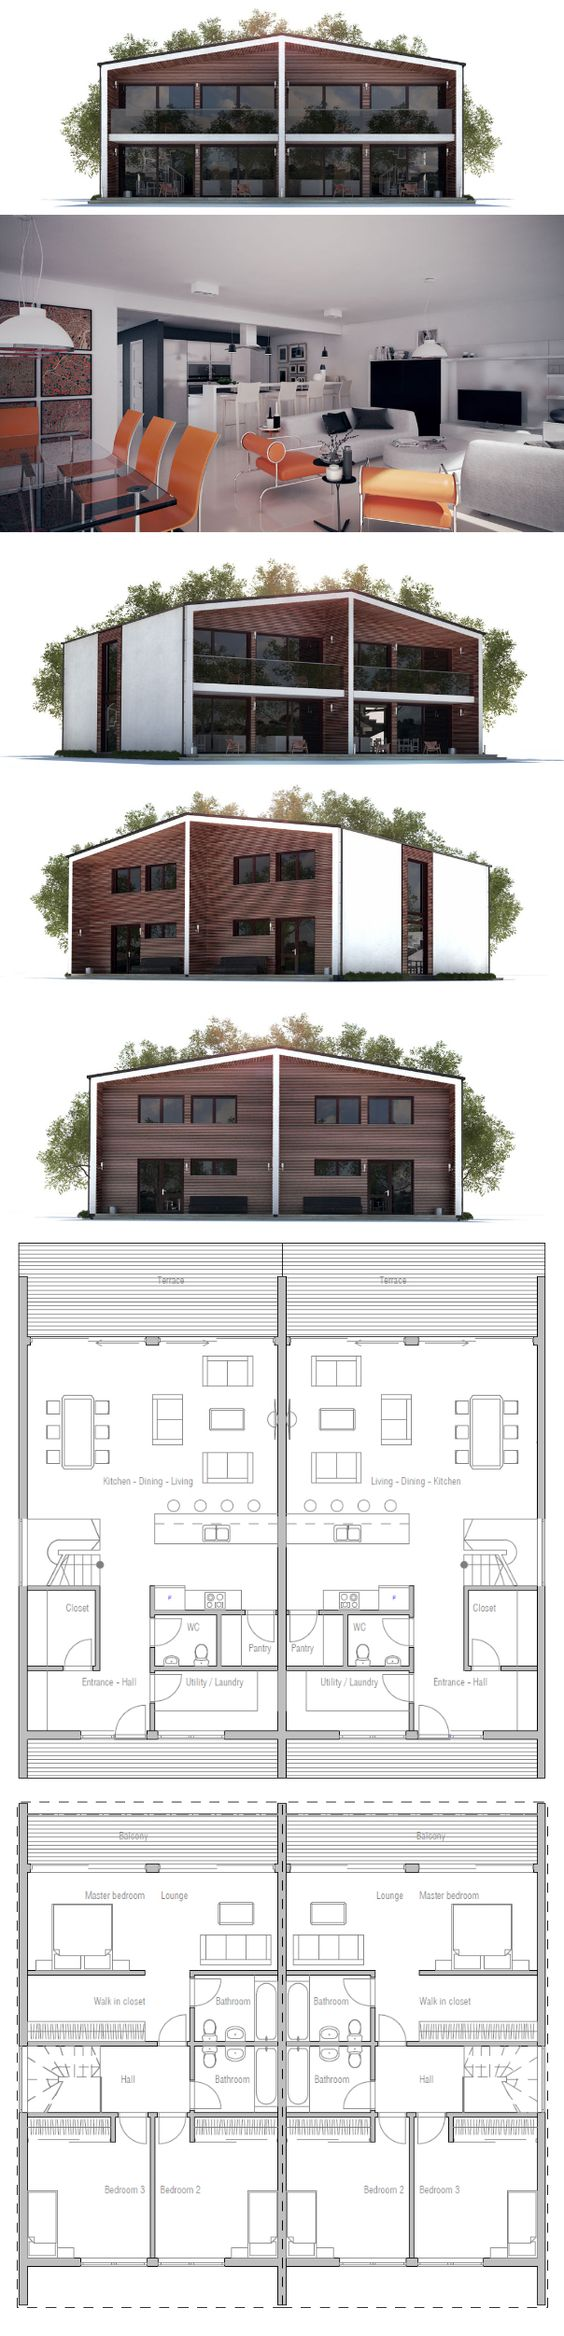 Duplex house house plans and duplex house plans on pinterest Narrow lot duplex